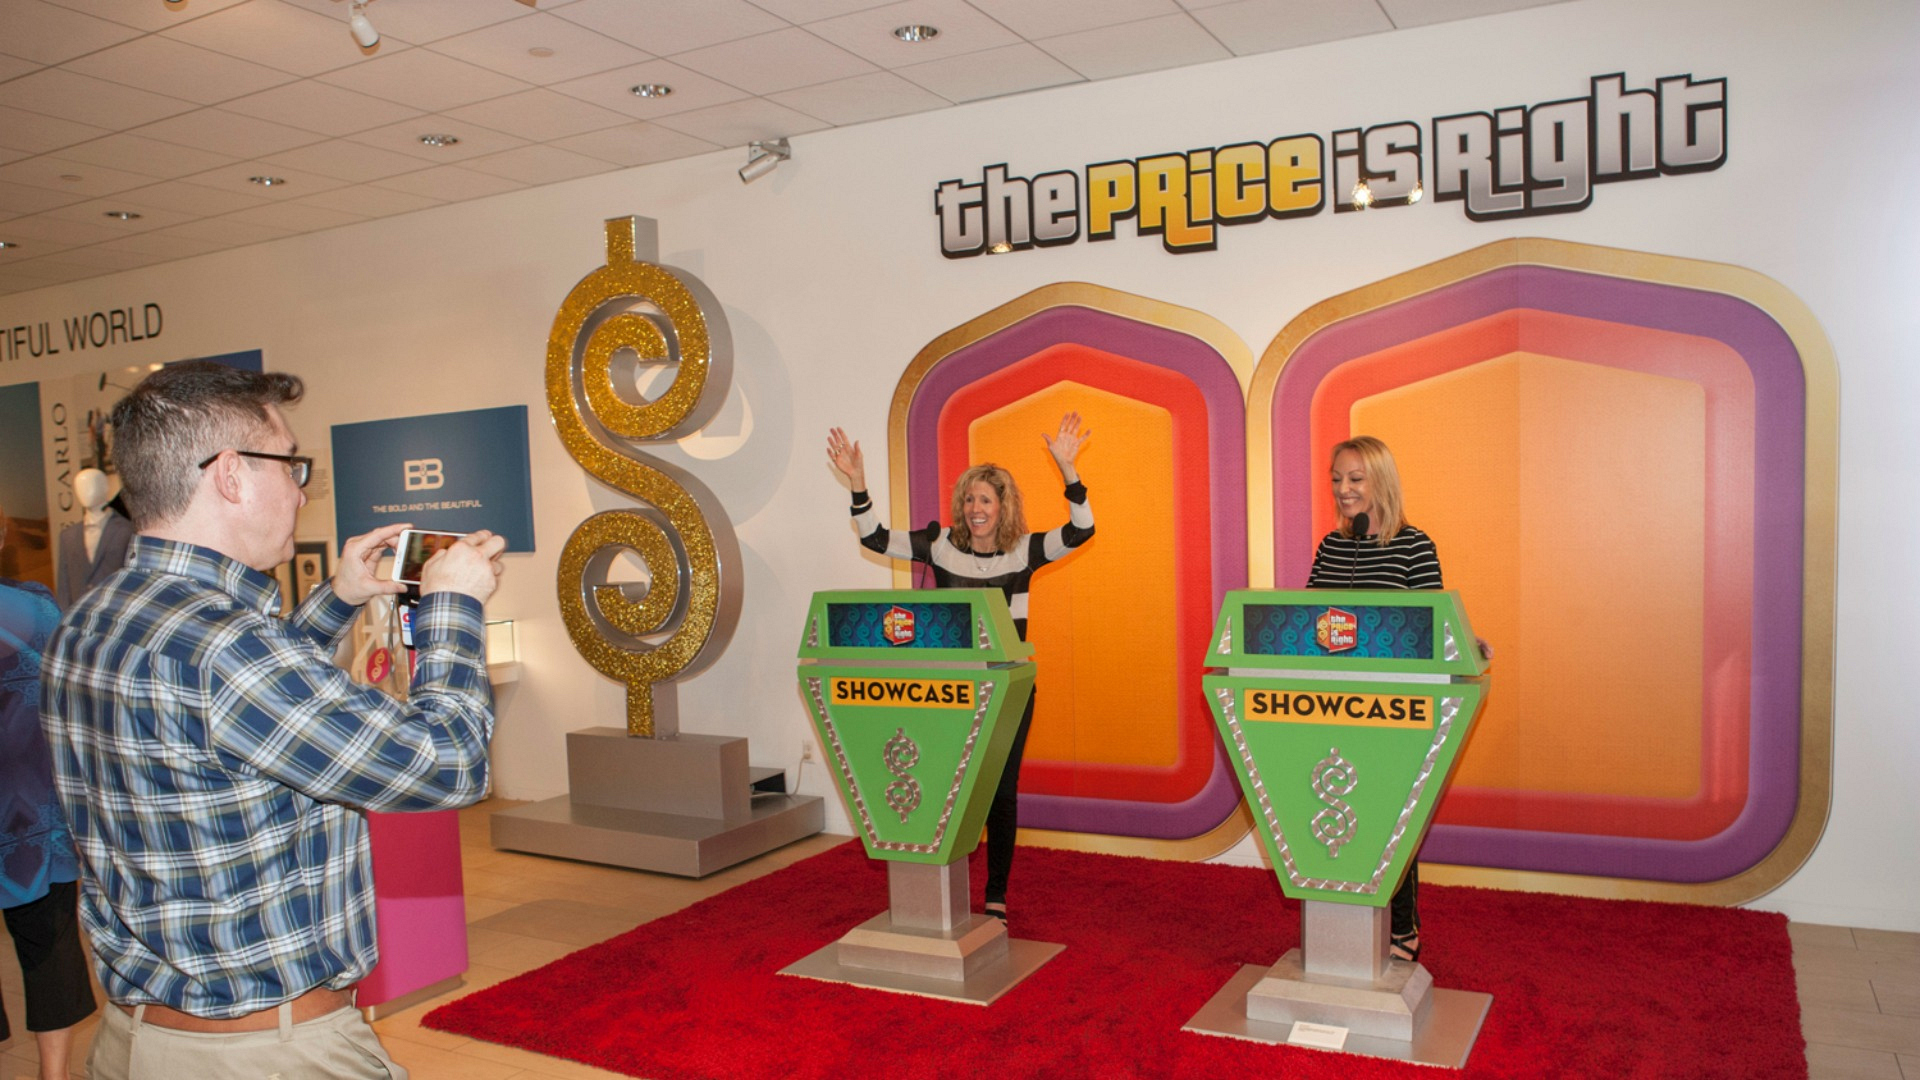 Two fans check out The Price Is Right Showcase podiums.